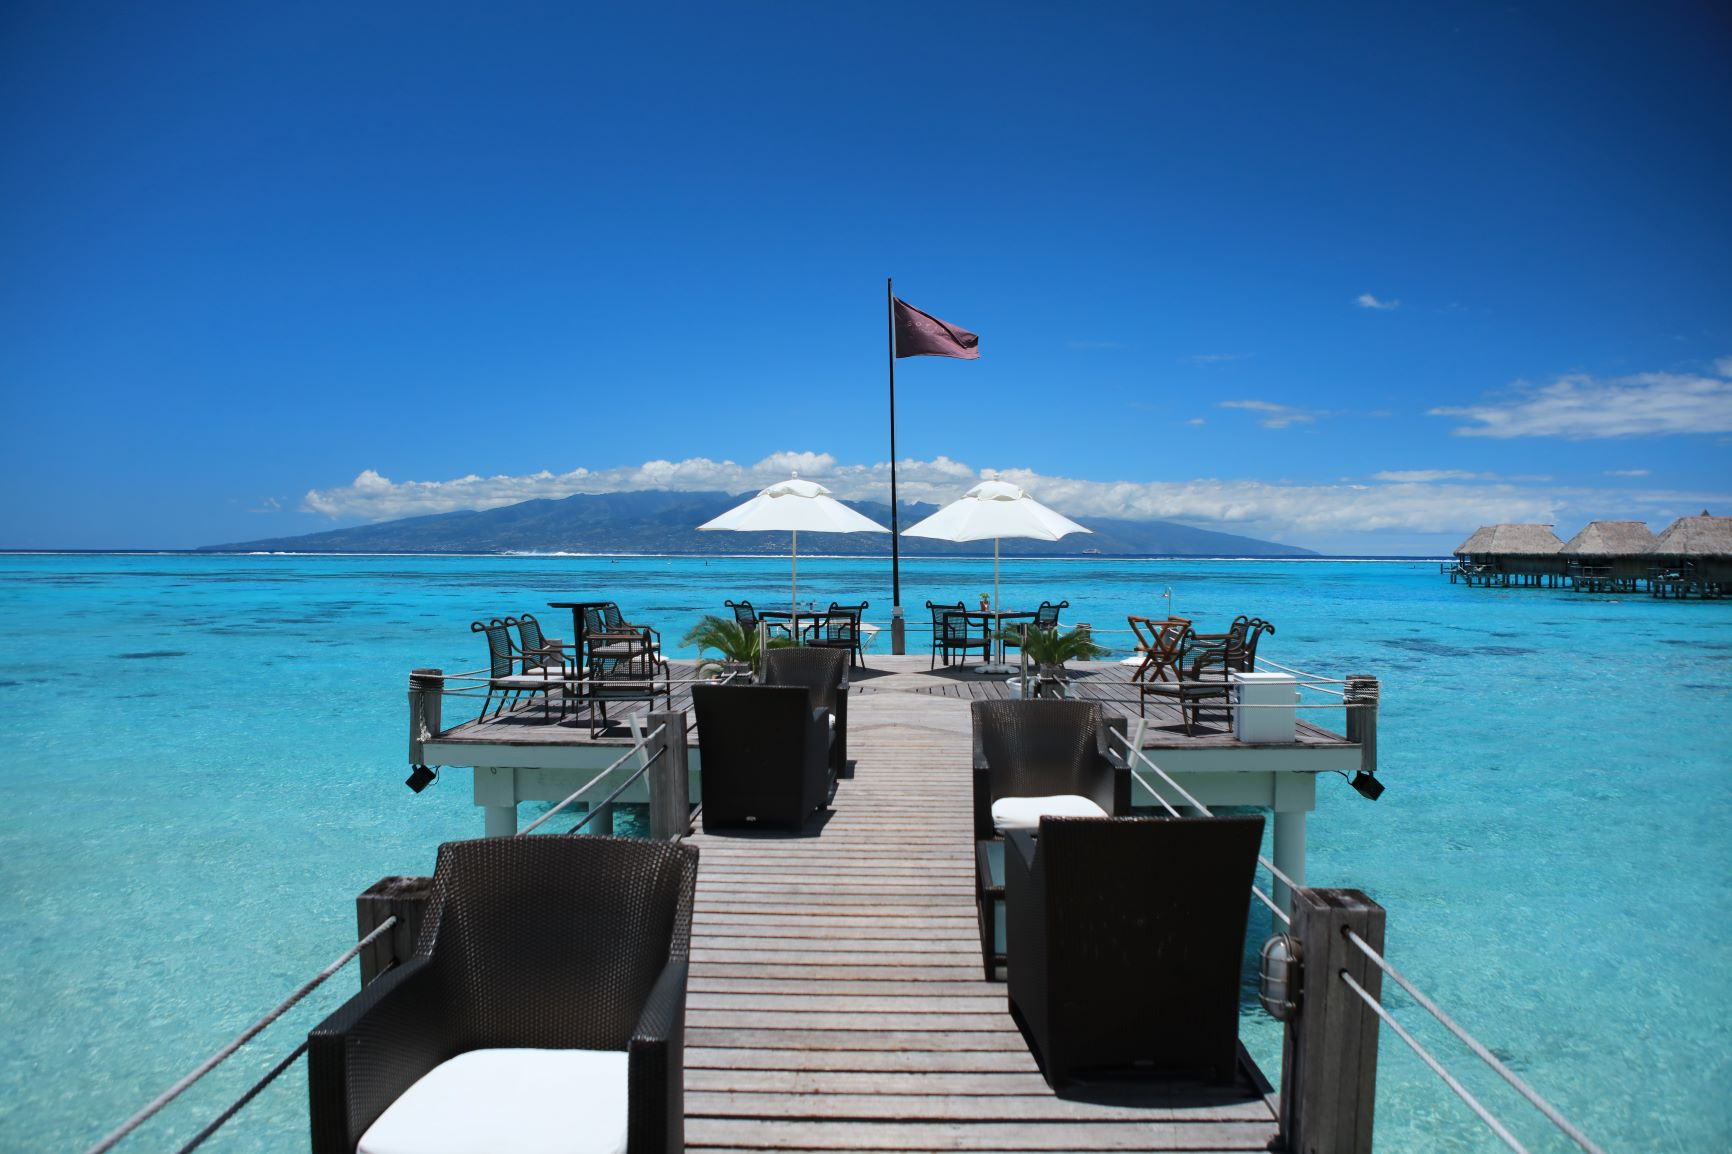 https://tahititourisme.fr/wp-content/uploads/2020/10/Sofitel-Moorea-Ia-Ora-lunch-with-a-view.jpg